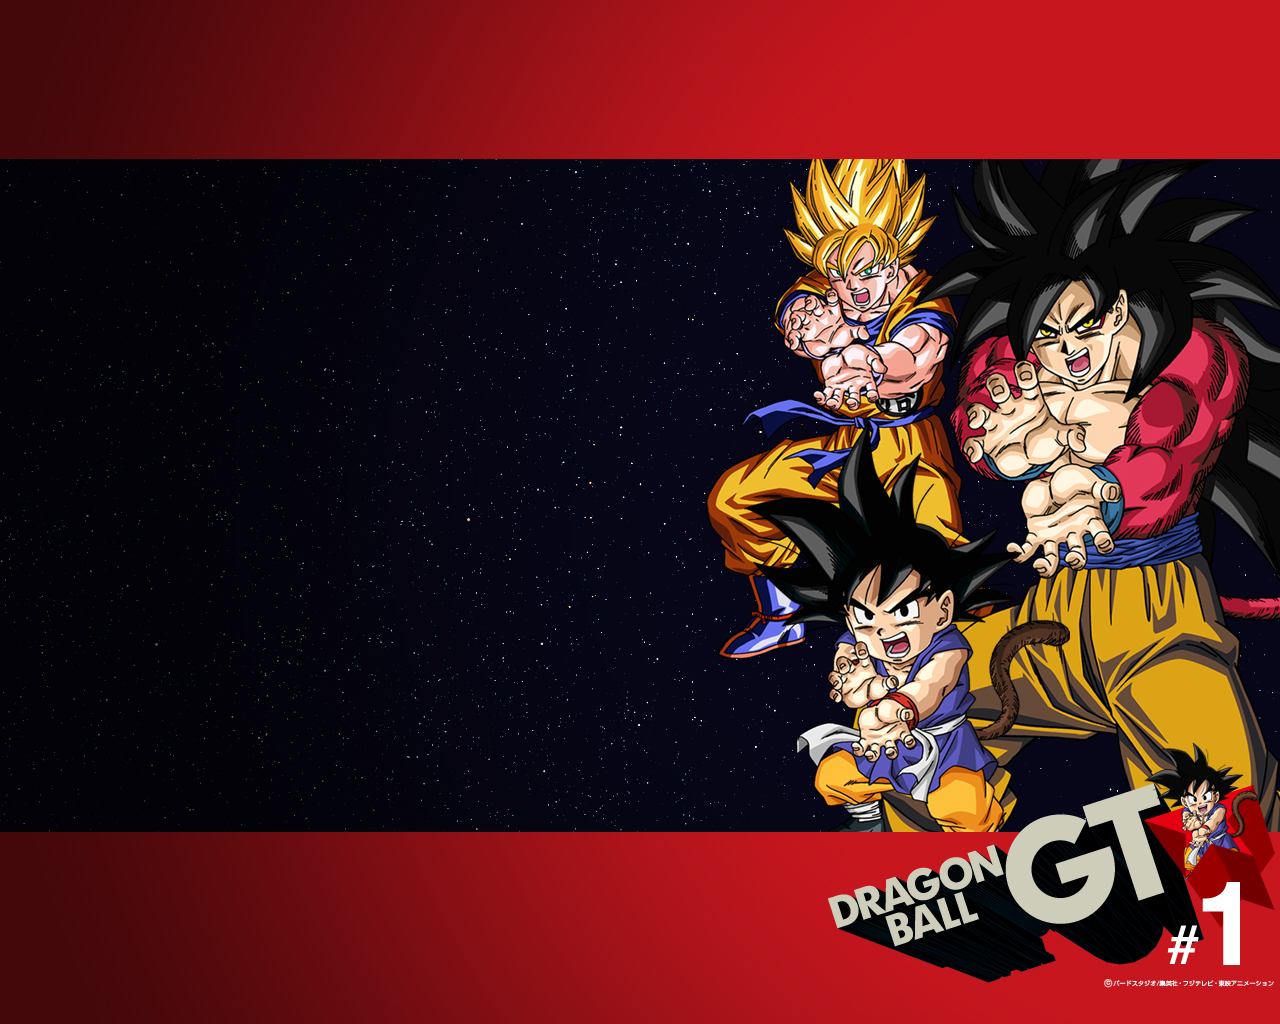 Bilinick Dragon Ball Gt Images and wallpapers 1280x1024